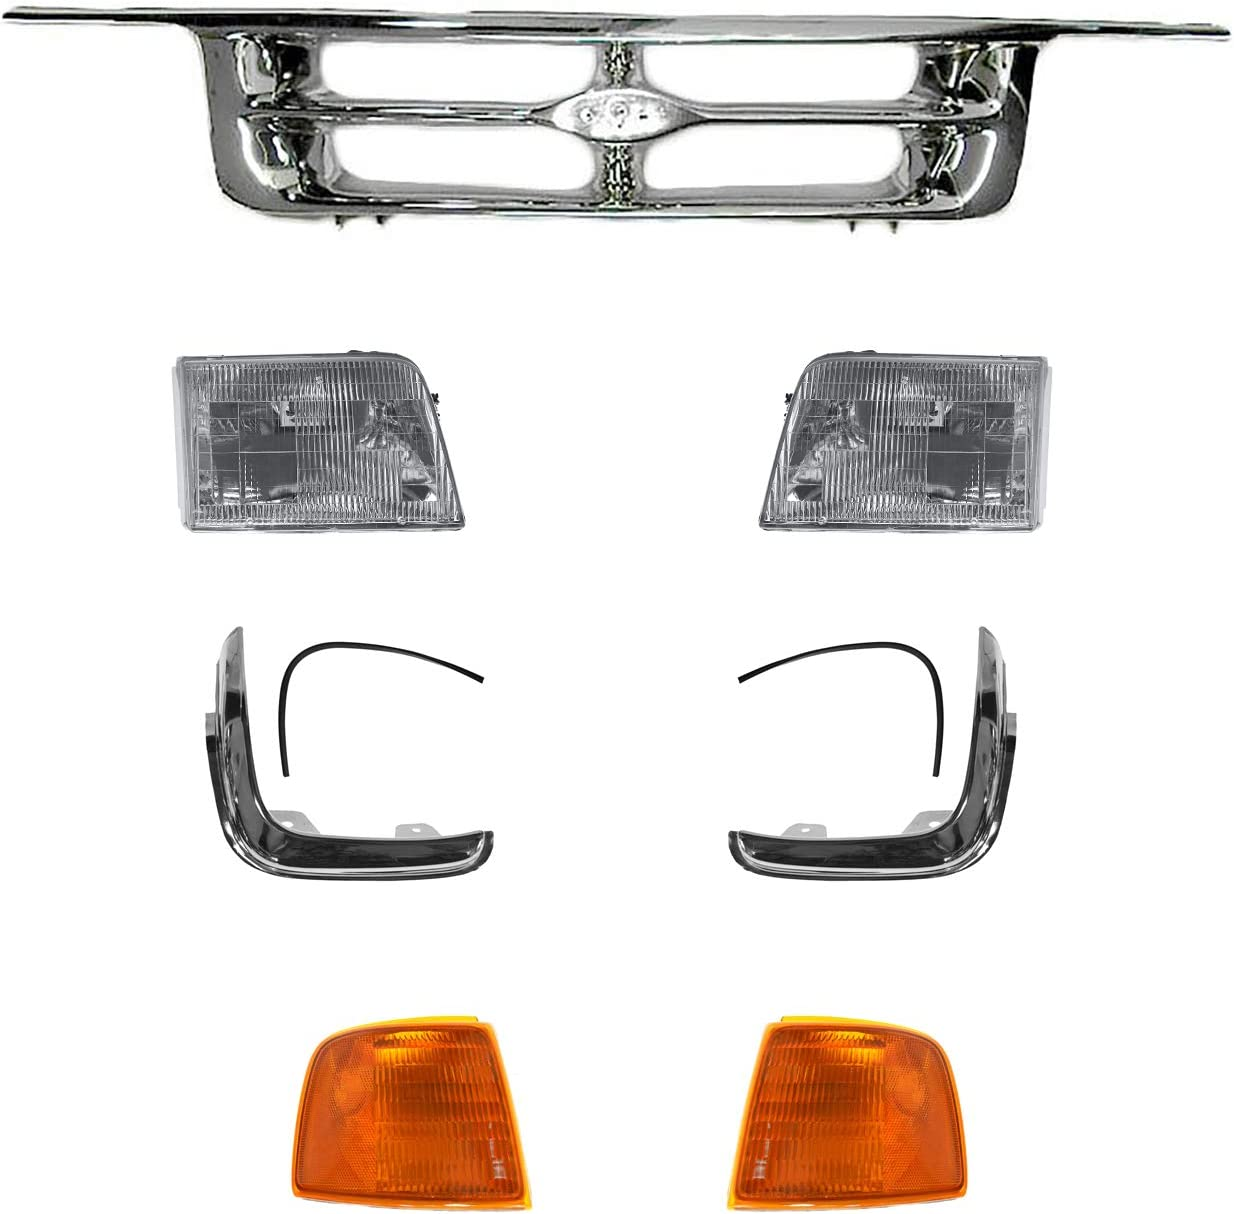 1A Auto All Chrome Grille Headlight Popular brand Parking for Soldering Light Set Trim